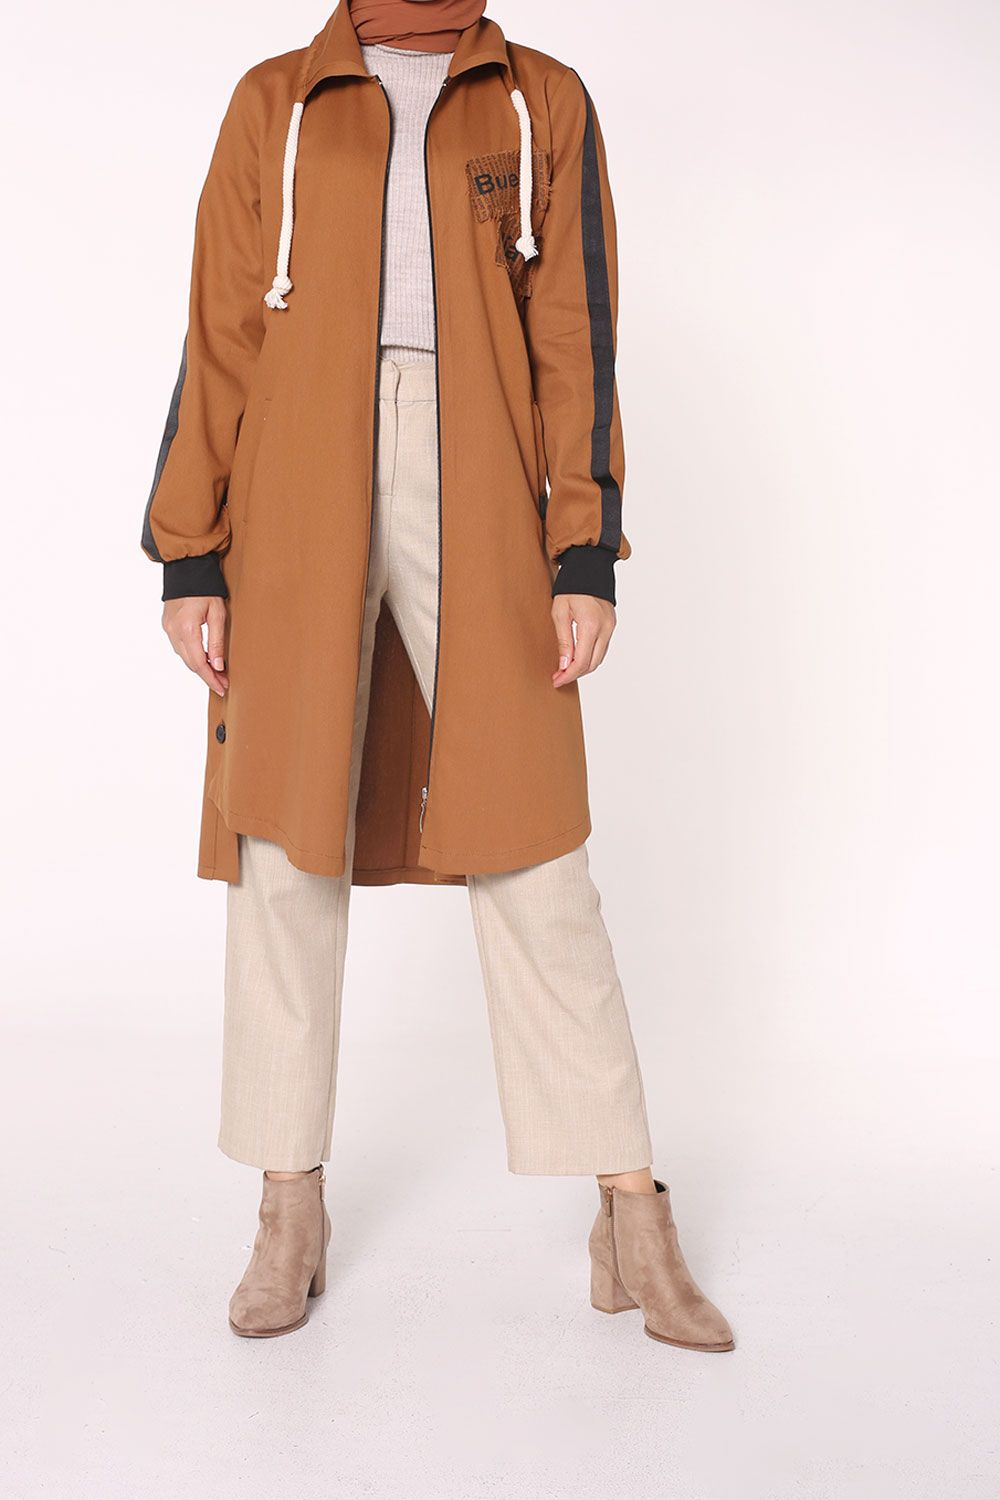 PRINTED TRENCH COAT